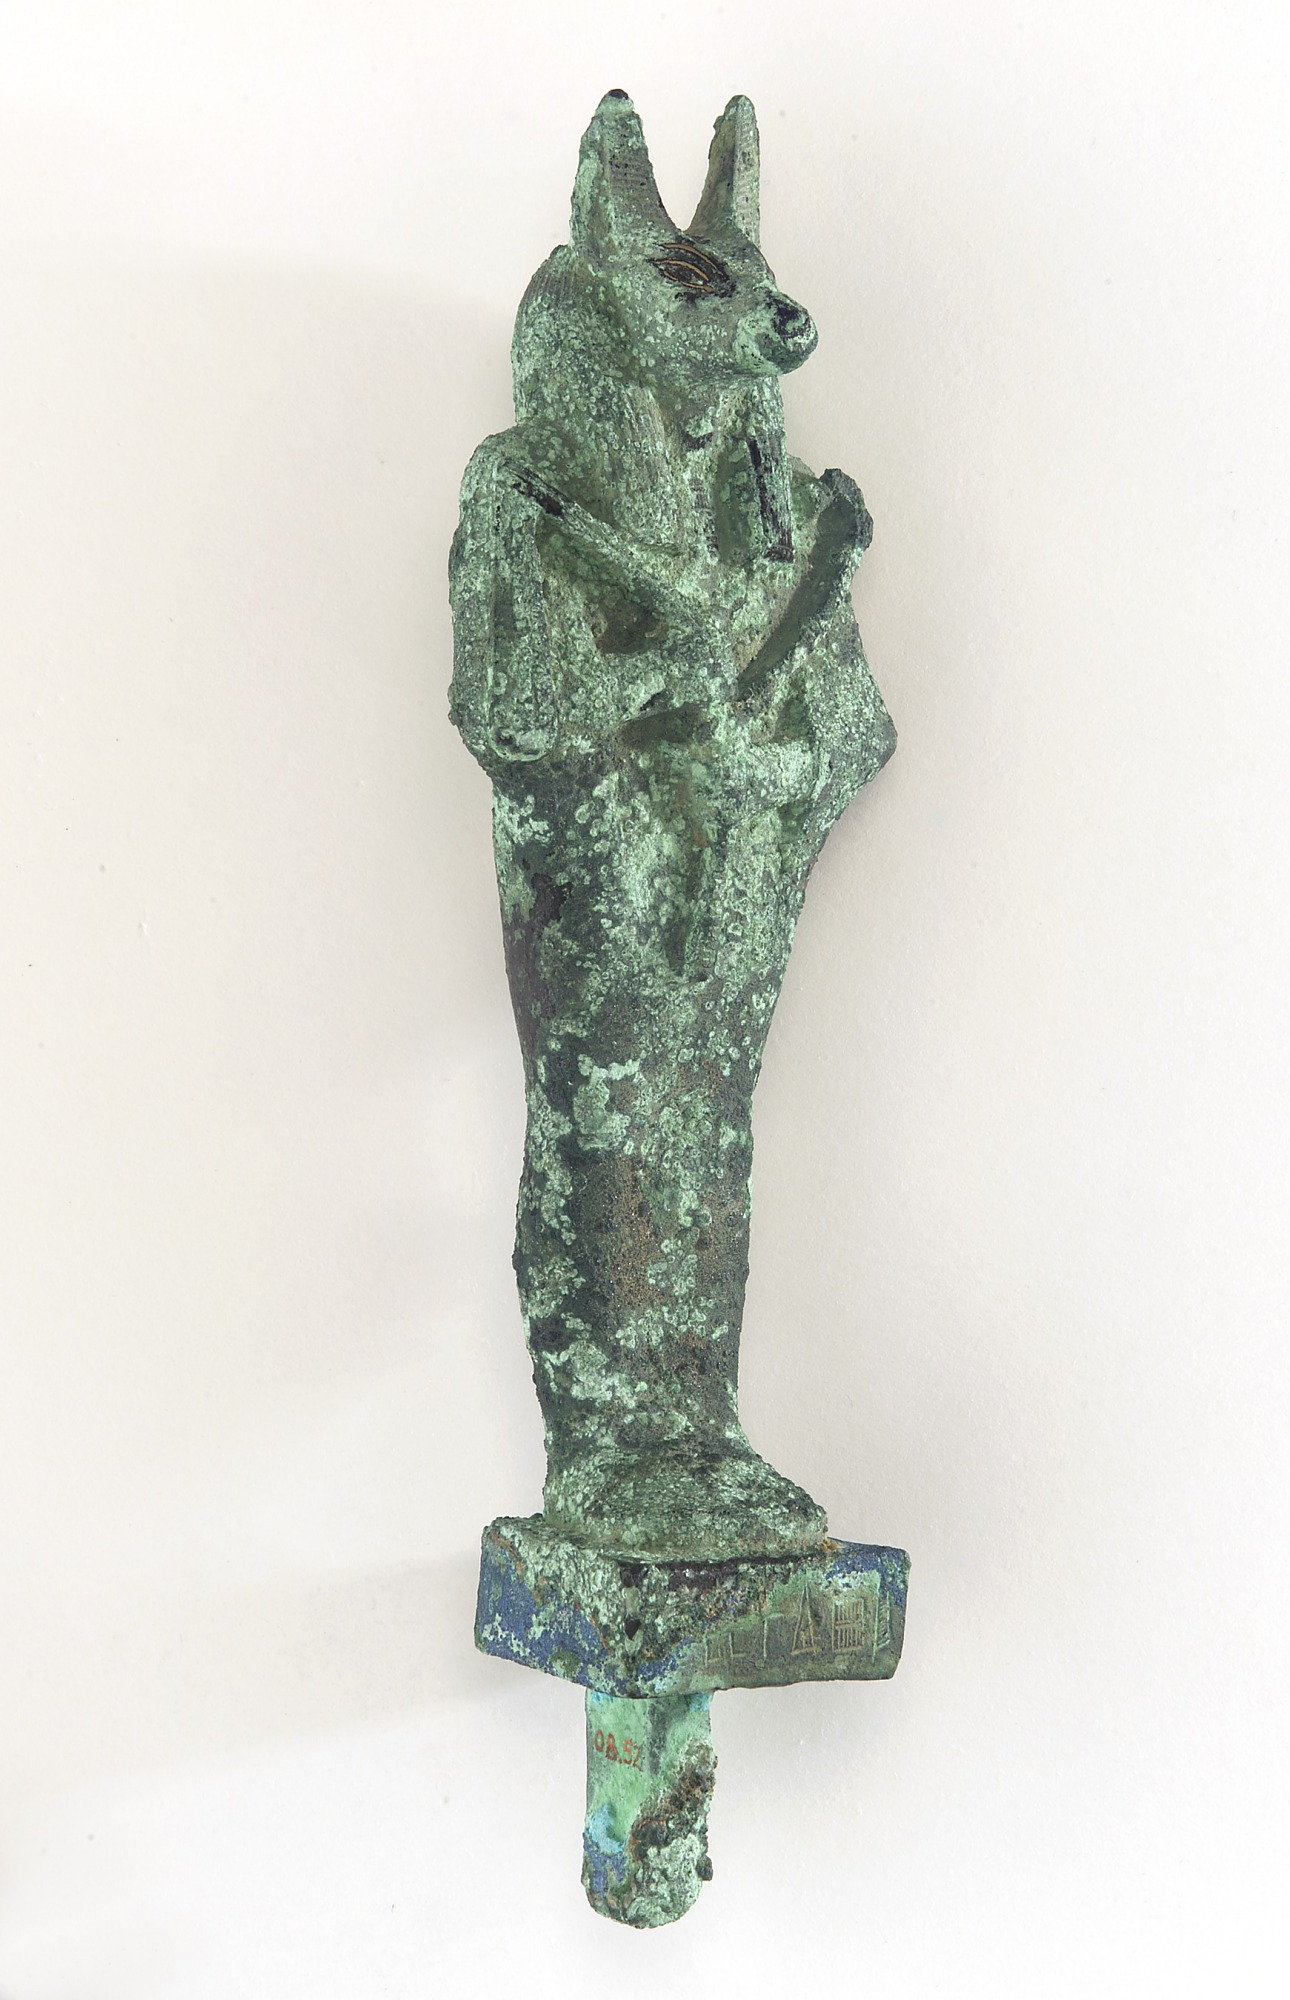 3/4 proper right: Statuette of Anubis